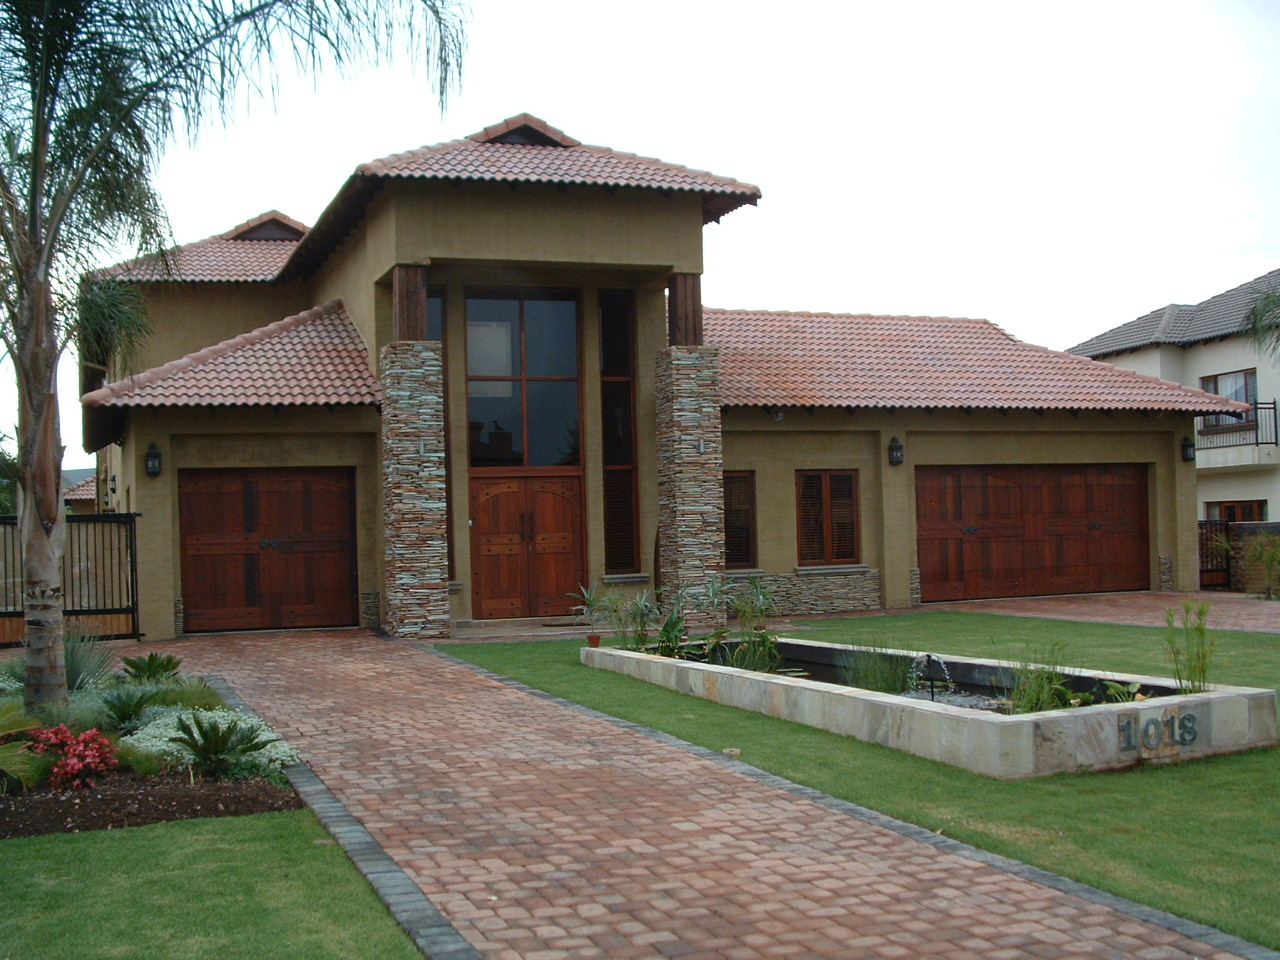 House plans a a con designs architects for House designs za